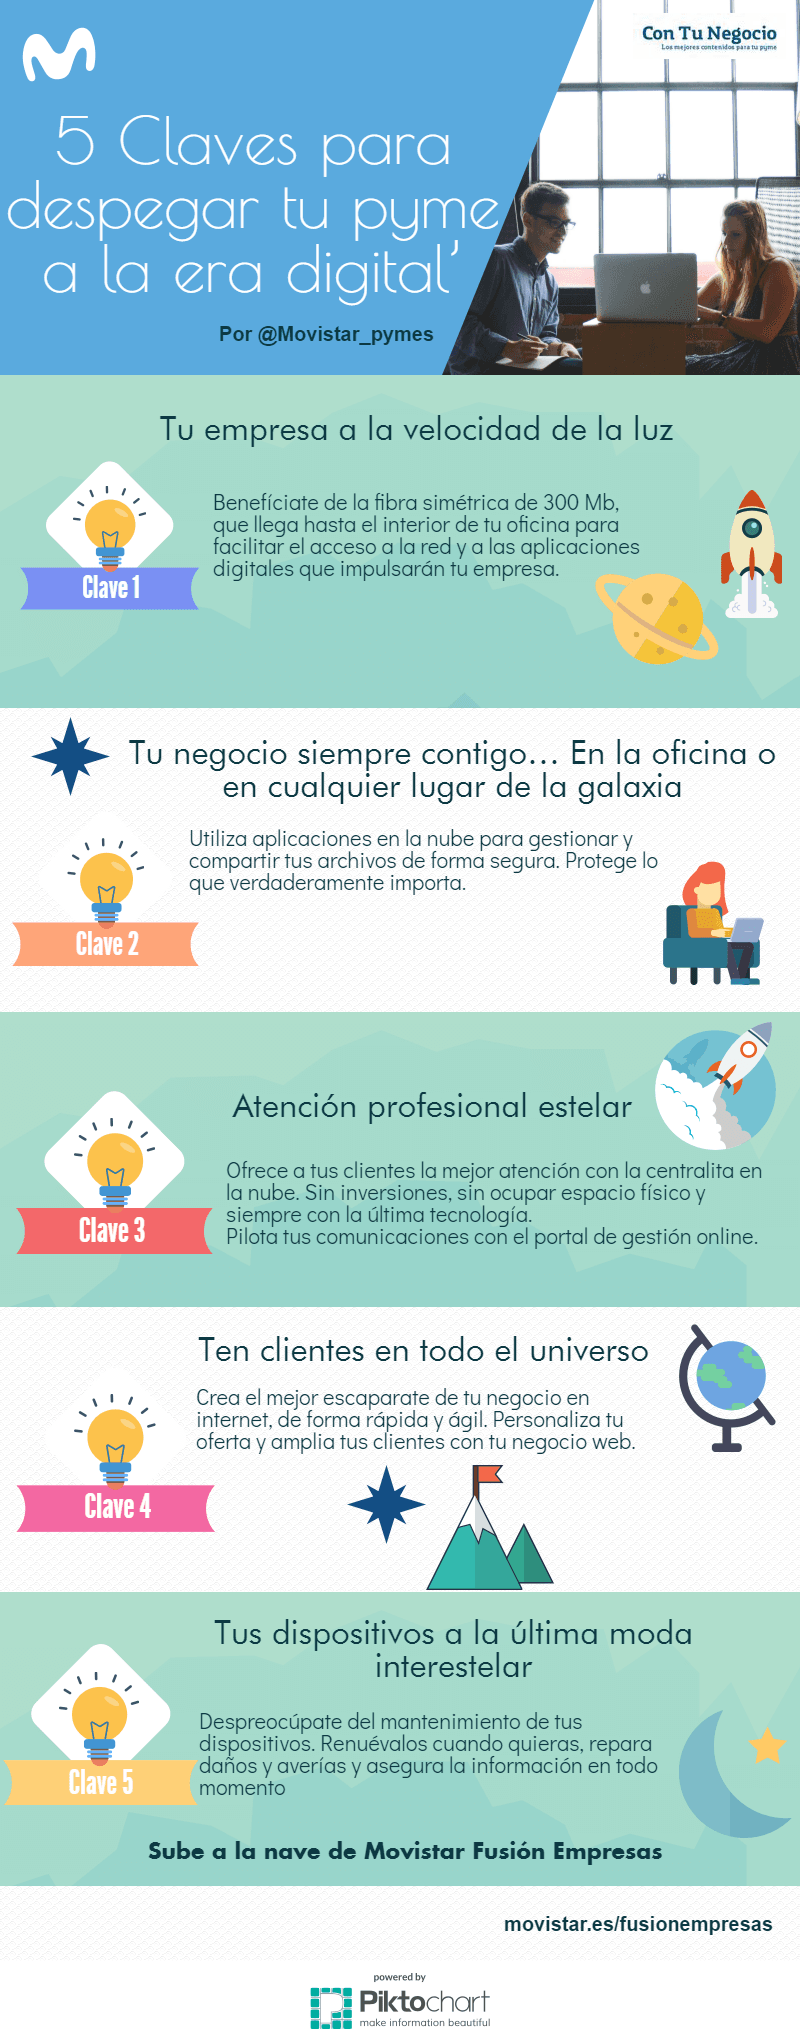 5 claves para despegar tu pyme a la era digital